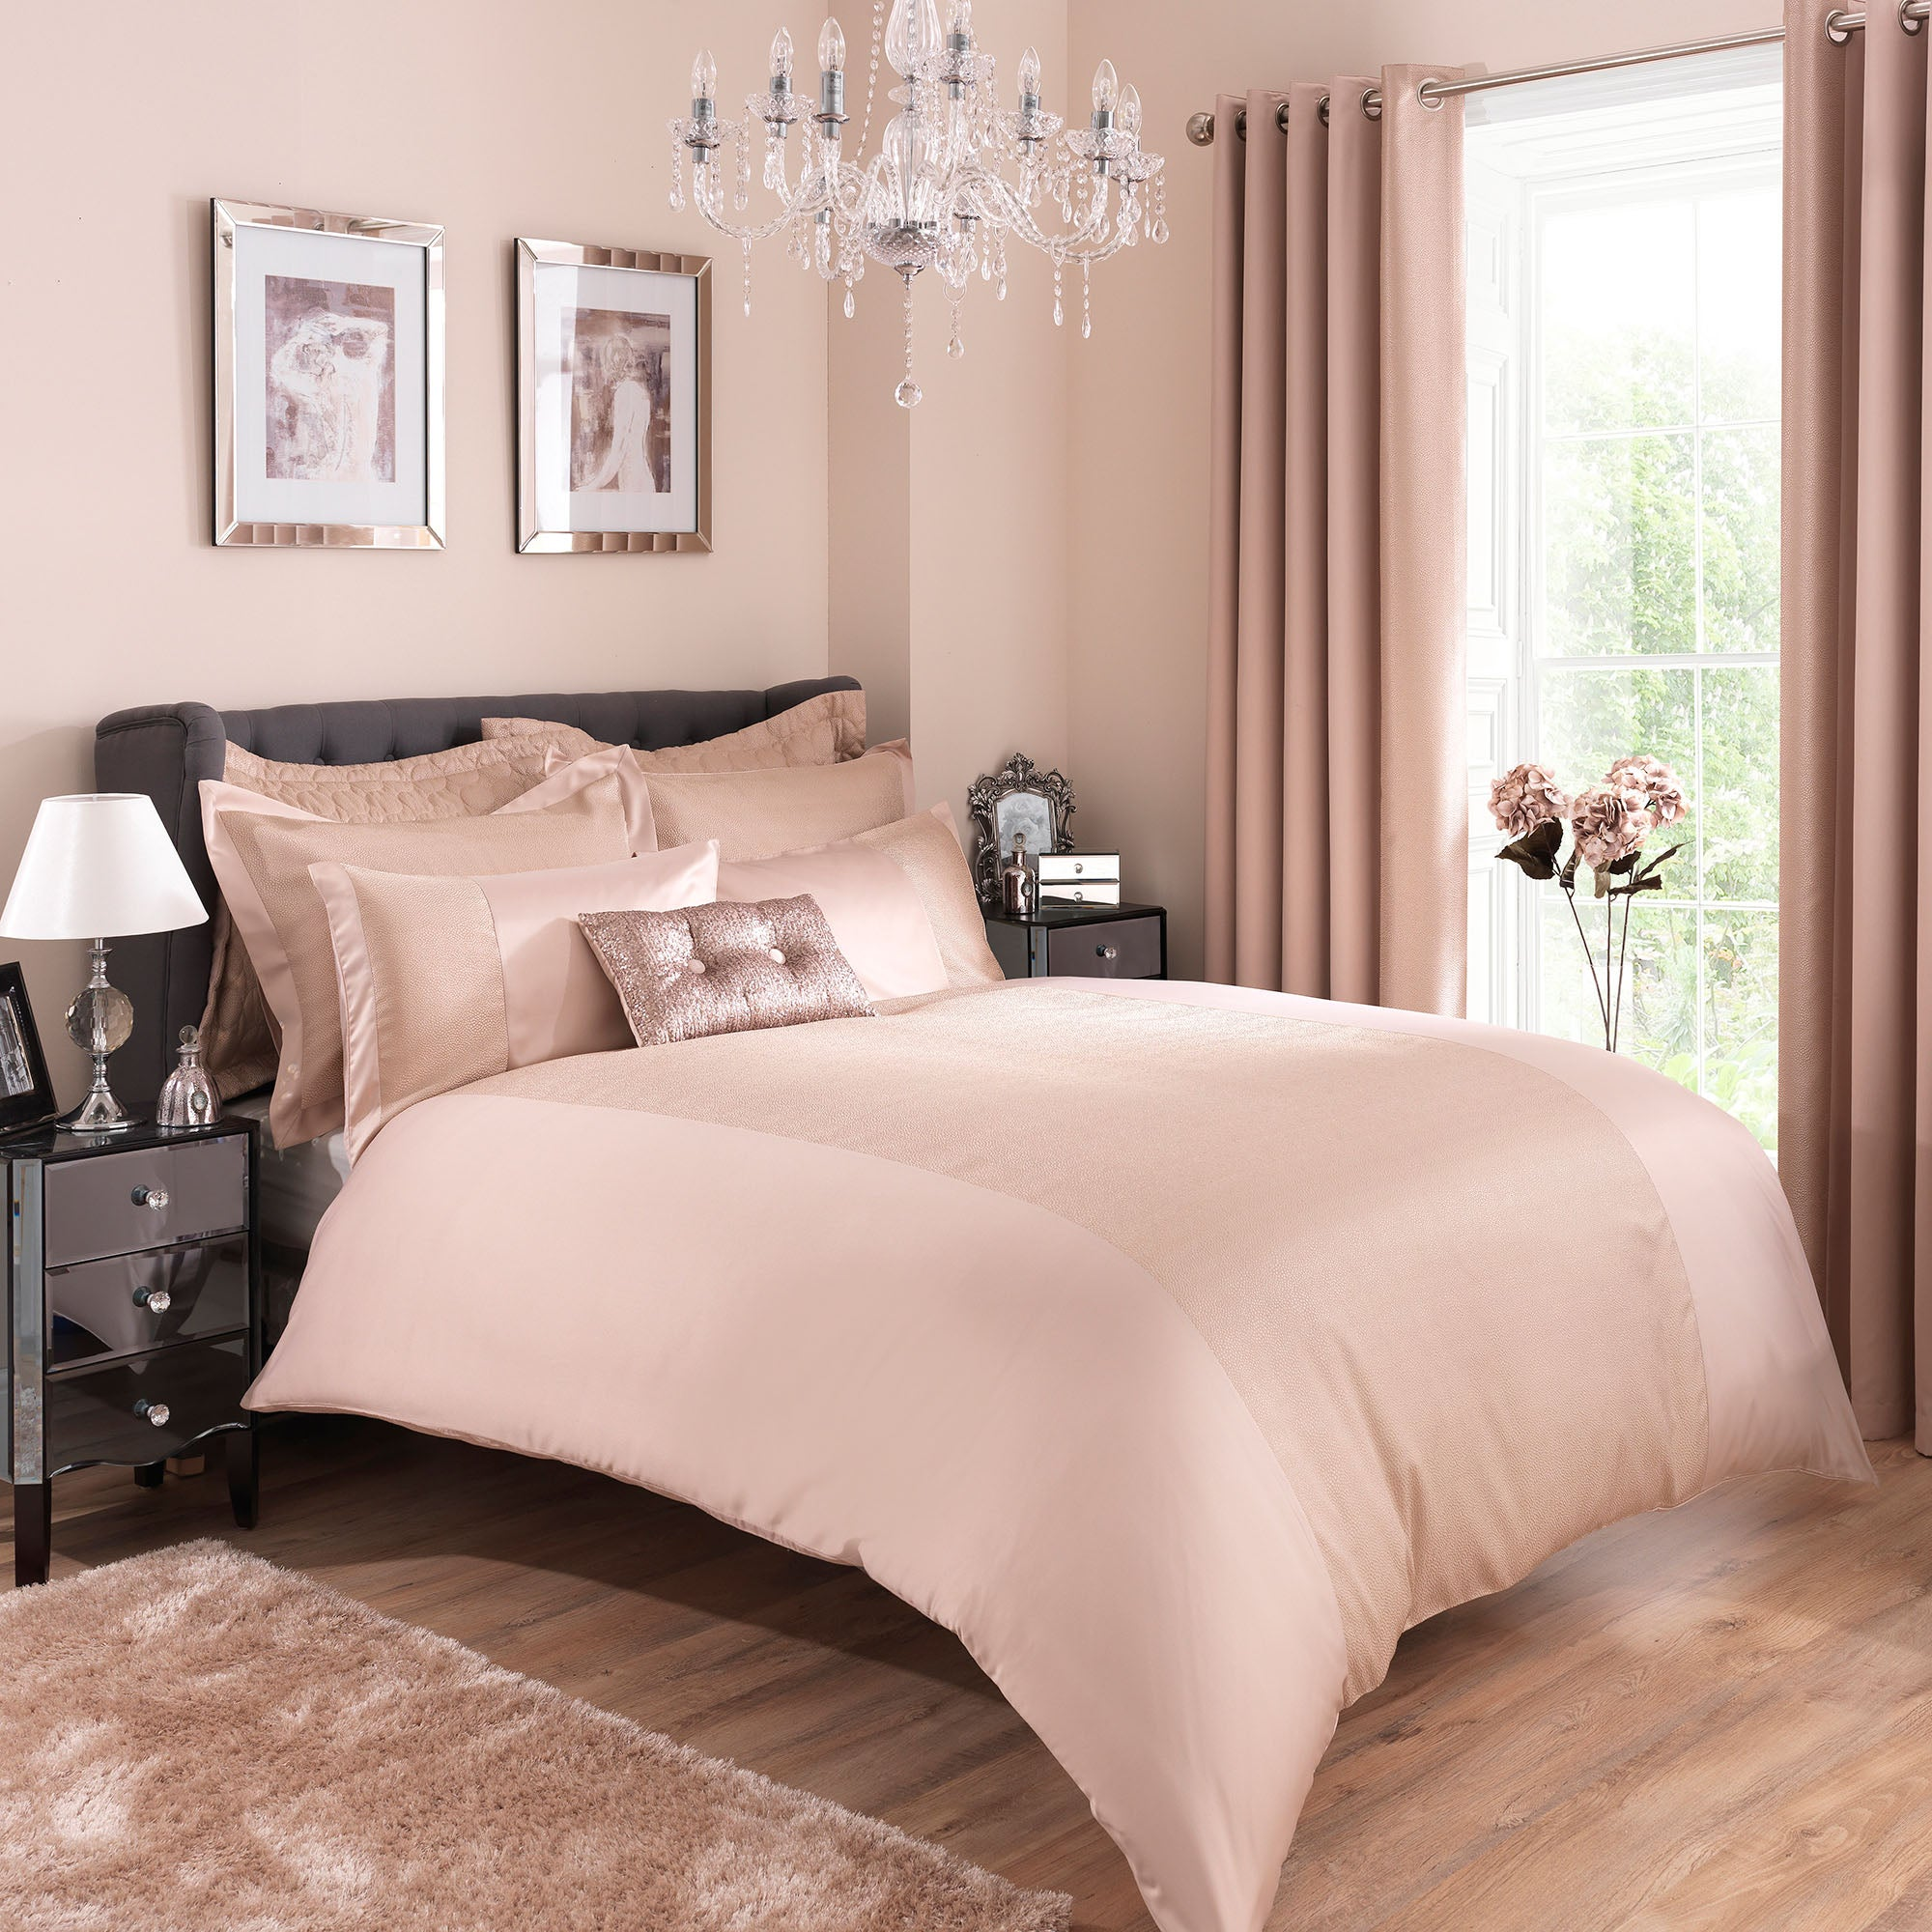 Image of Adele Champagne Duvet Cover and Pillowcase Set Champagne (Gold)